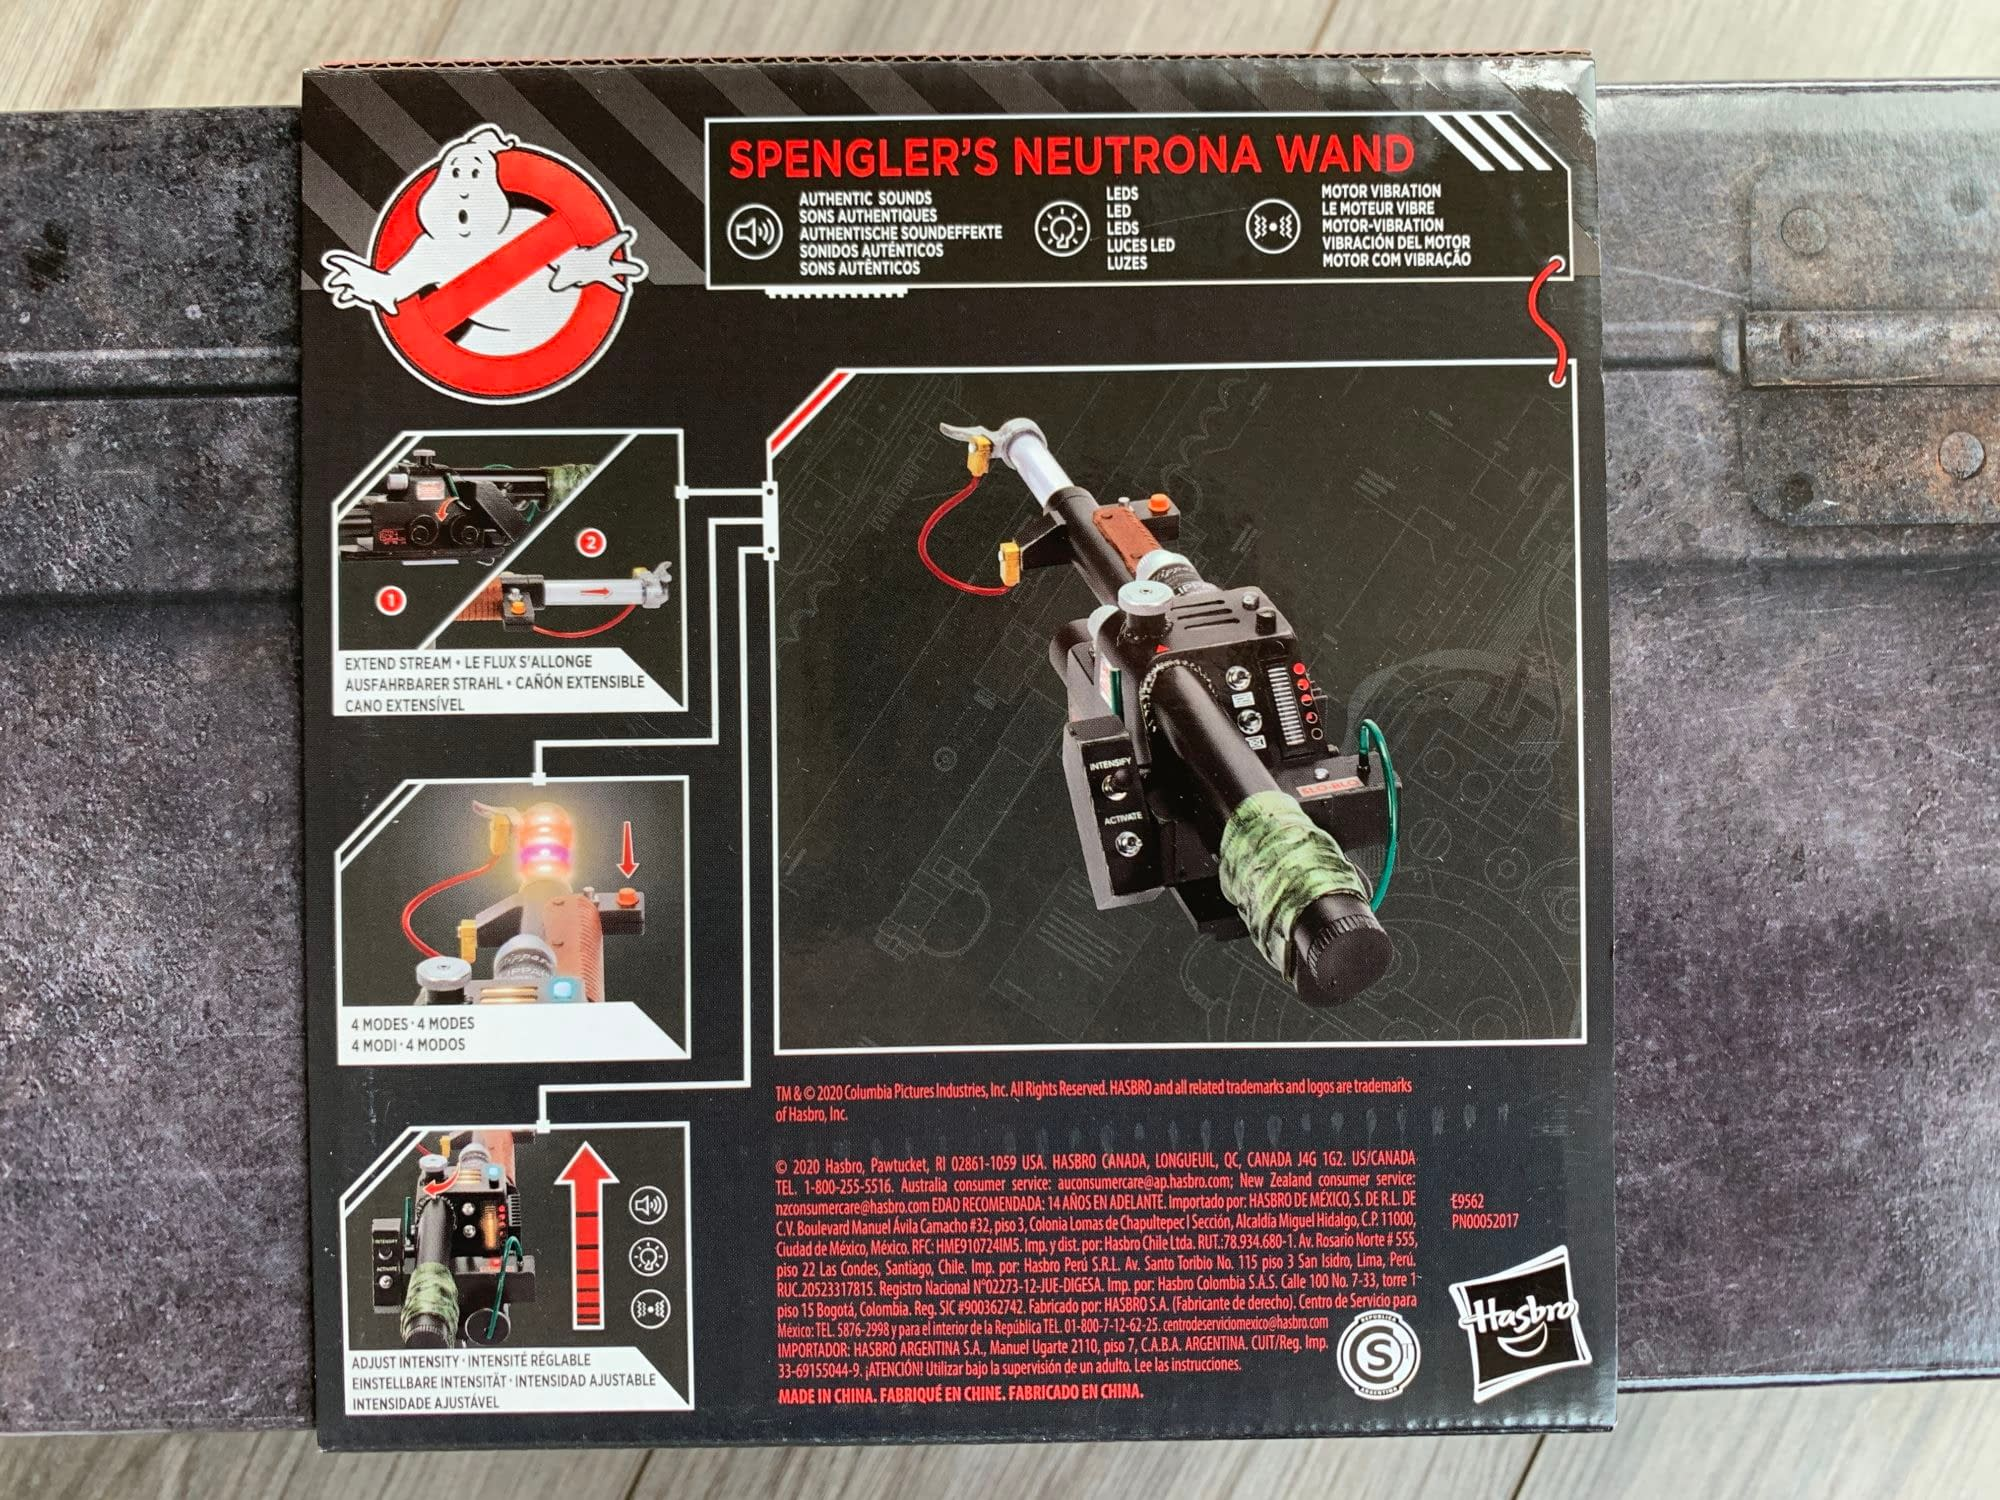 Let's Look At Hasbro's New Ghostbusters Plasma Series Neutrona Wand